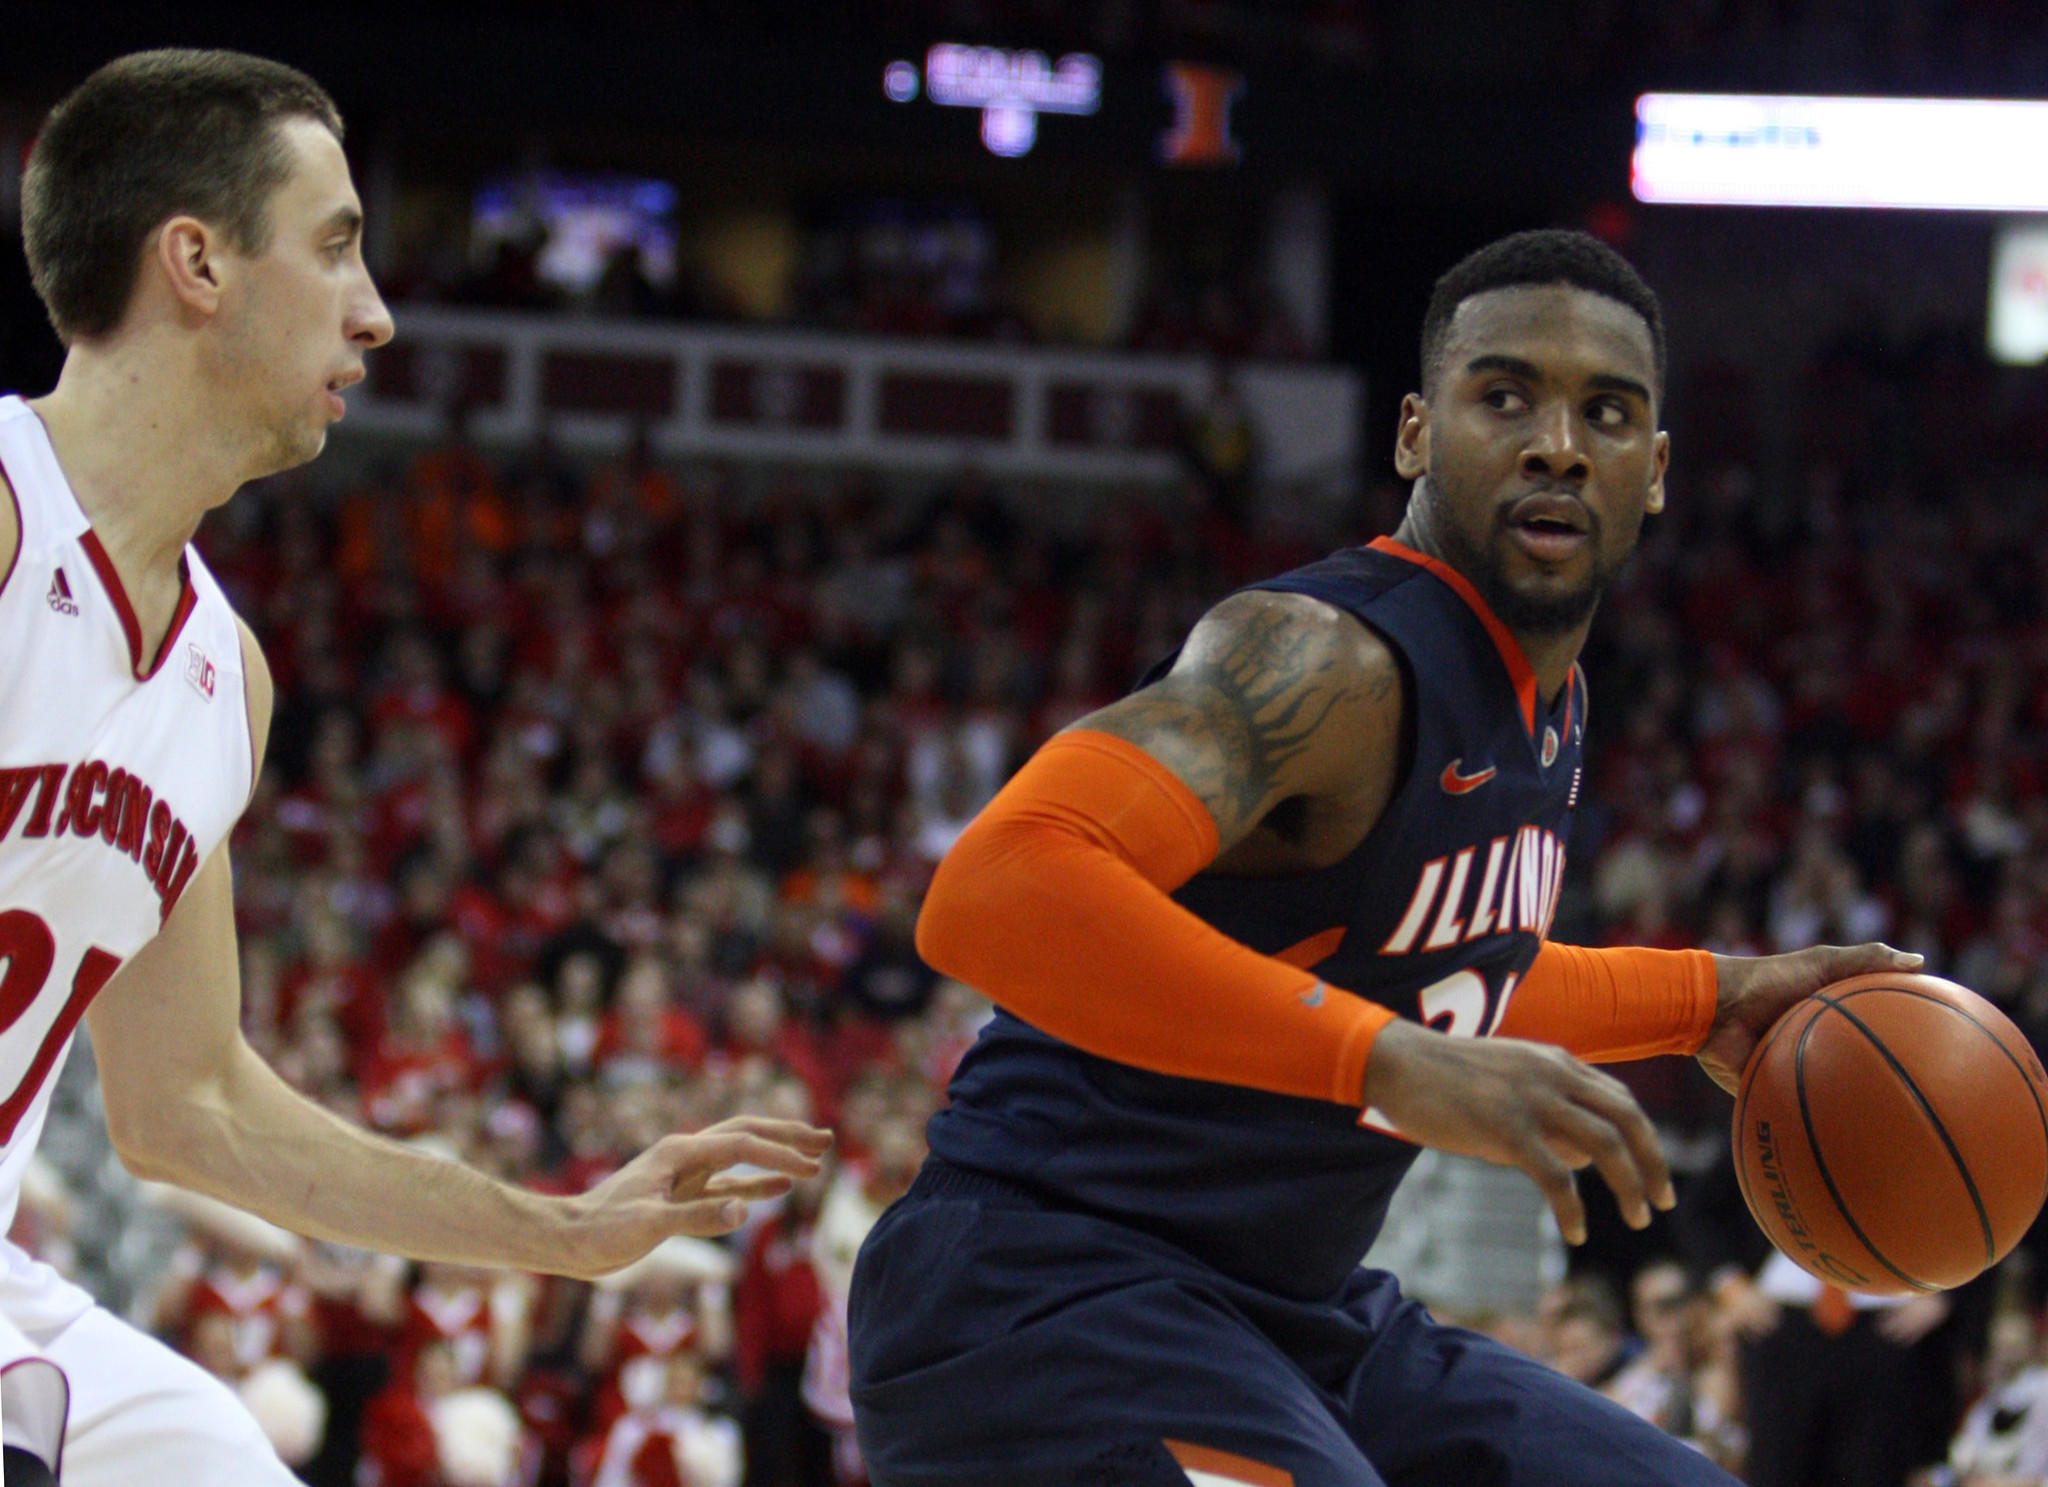 Illinois Fighting Illini guard Rayvonte Rice (right) looks to pass as Wisconsin Badges guard Josh Gasser (left) defends.